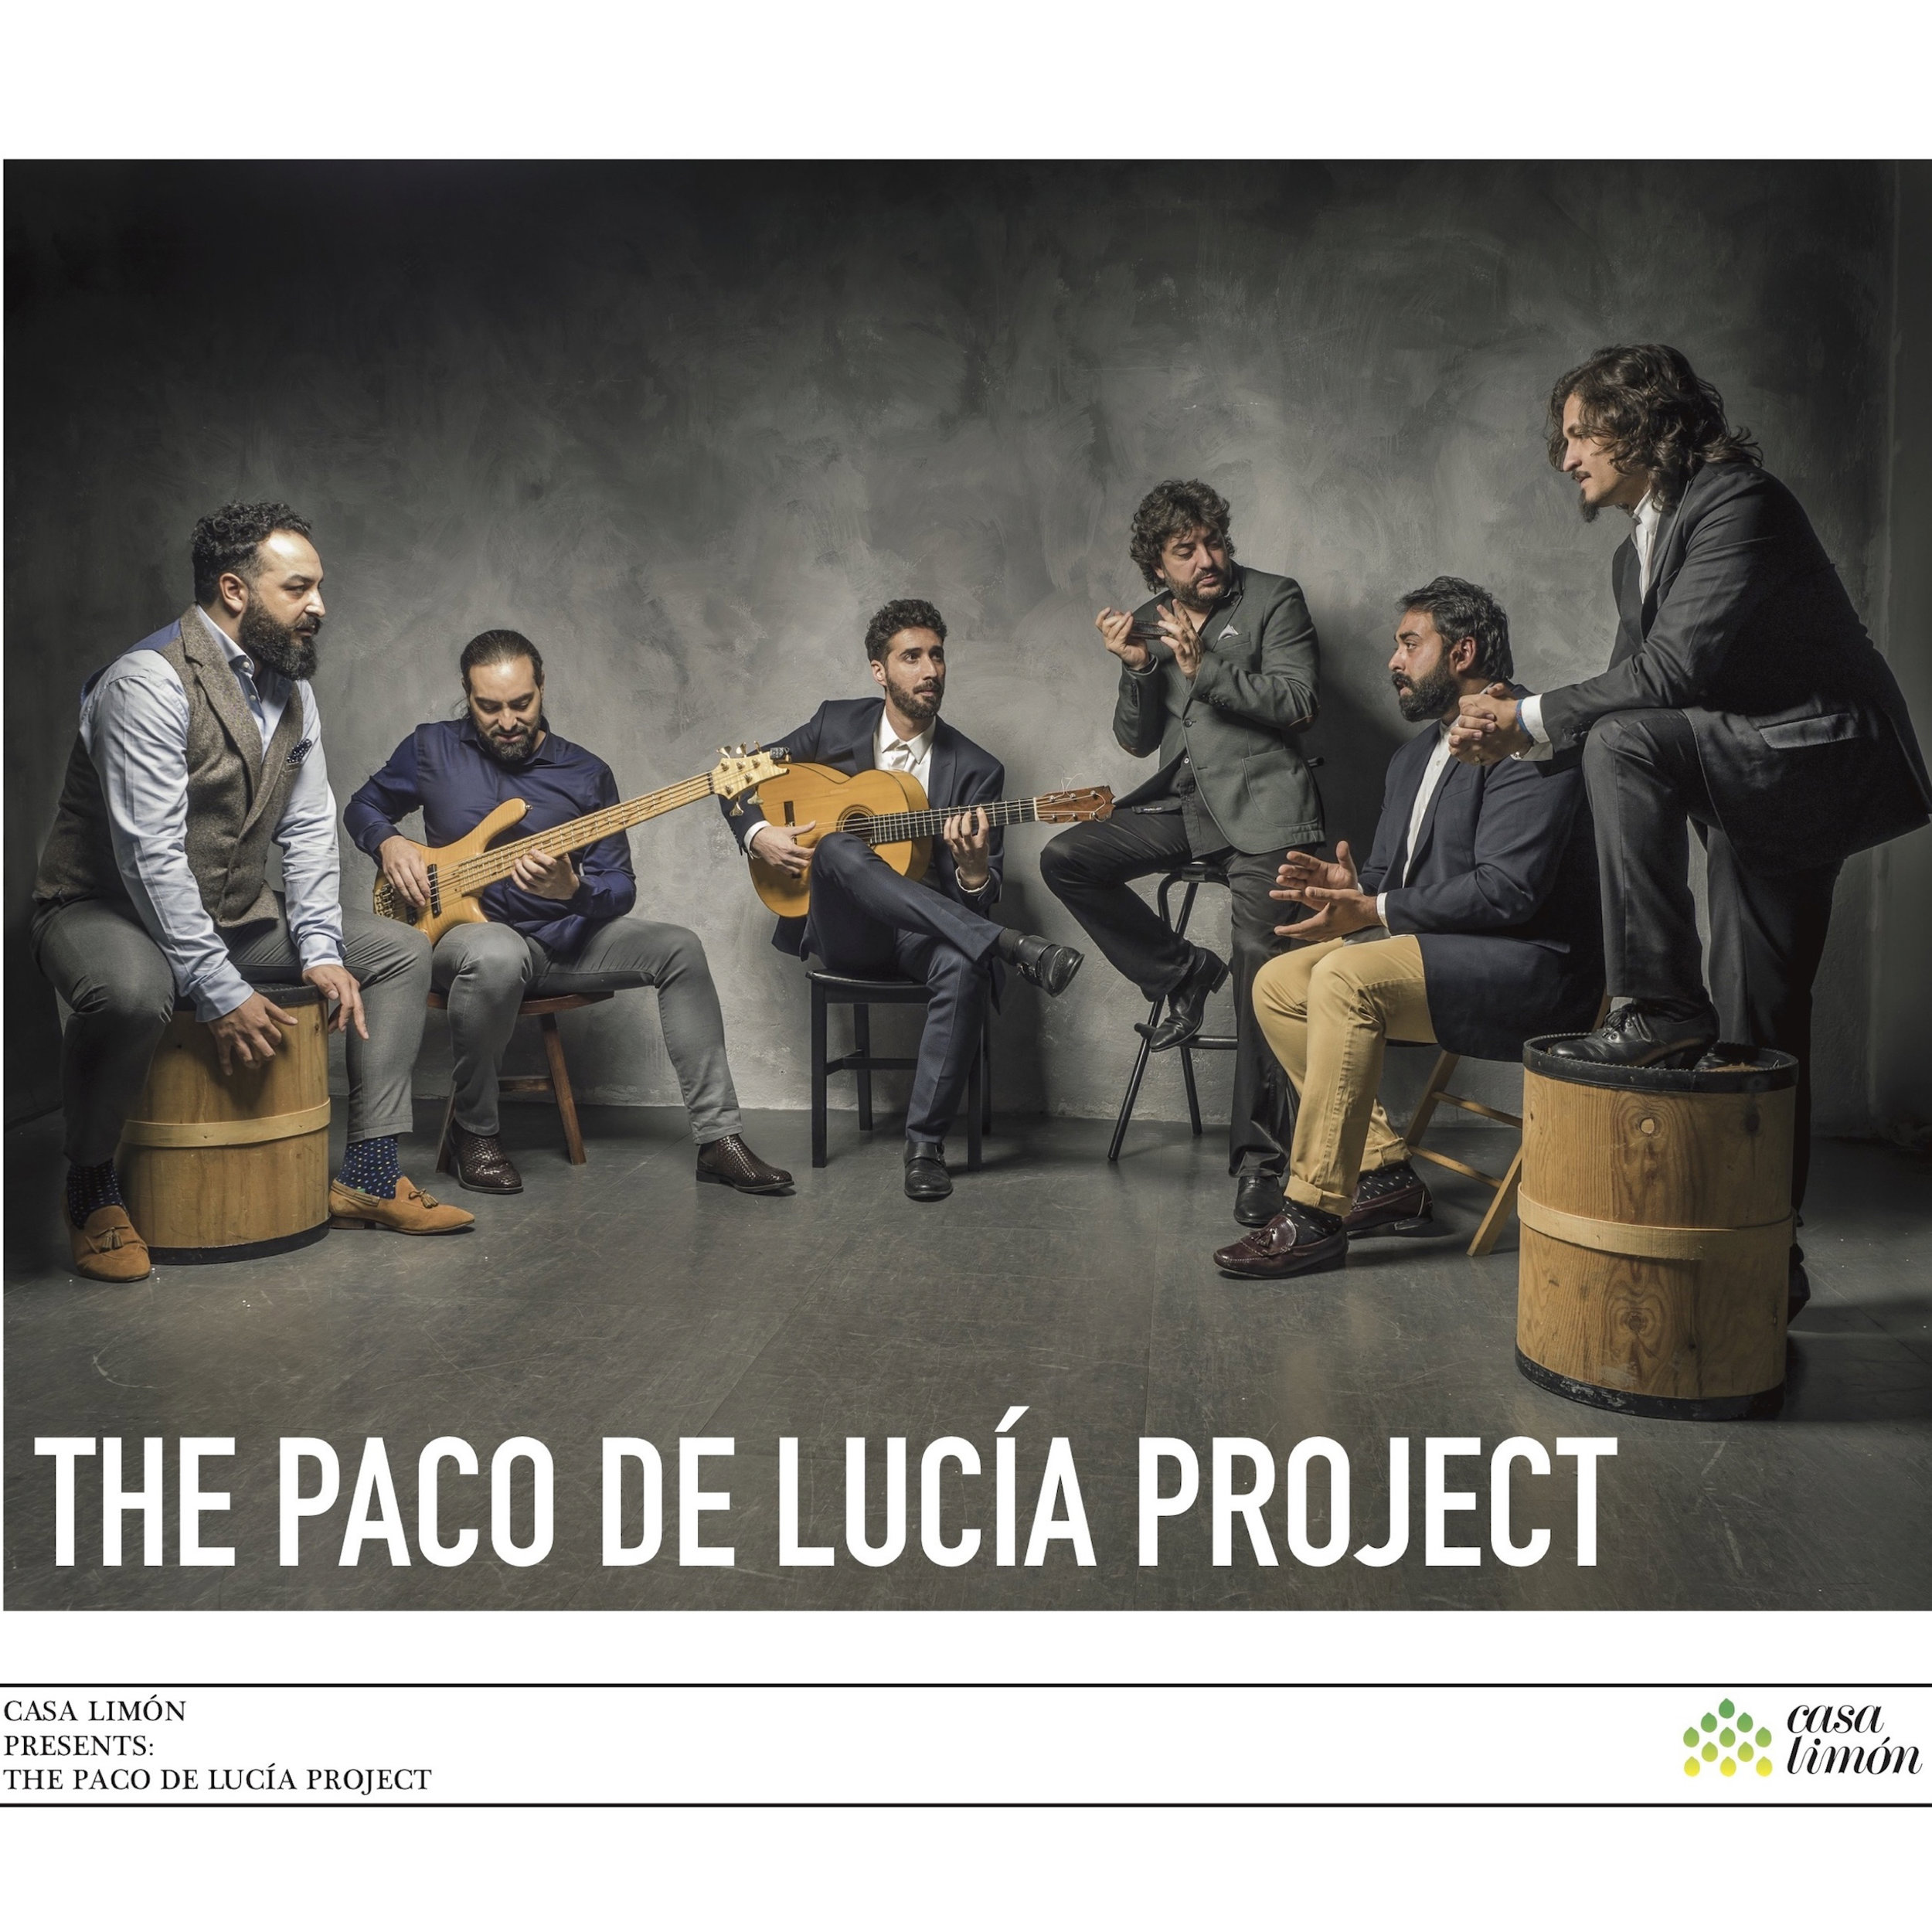 The Paco de Lucía Project Live CD is out! - Recorded live at Miami's Olympia Theater during their Fall 2017 tour with IMG Artists, this record pays tribute to de Lucía's legacy.